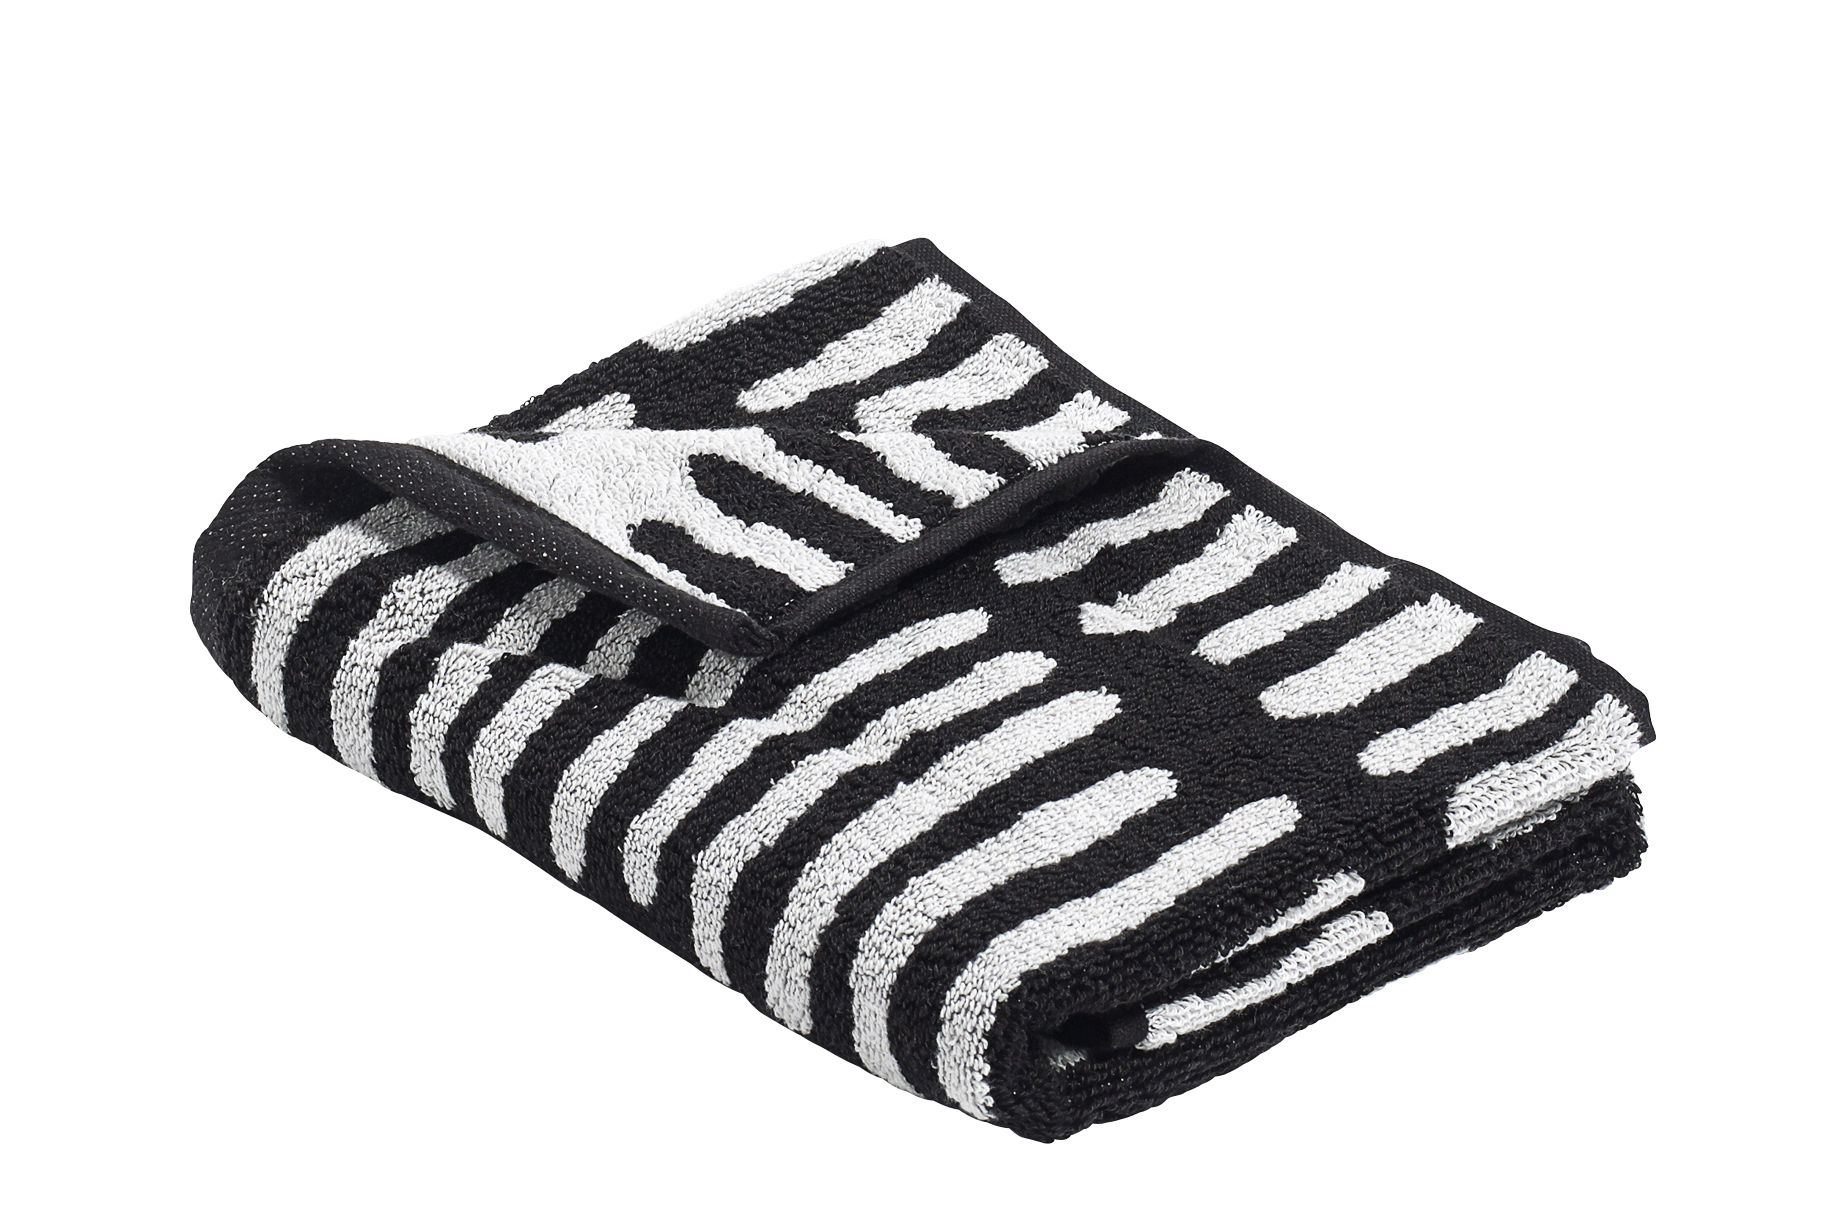 Accessories - Bathroom Accessories - He She It Hand towel - by Nathalie du pasquier/ 70 x 50 cm by Hay - He / Black - Cotton